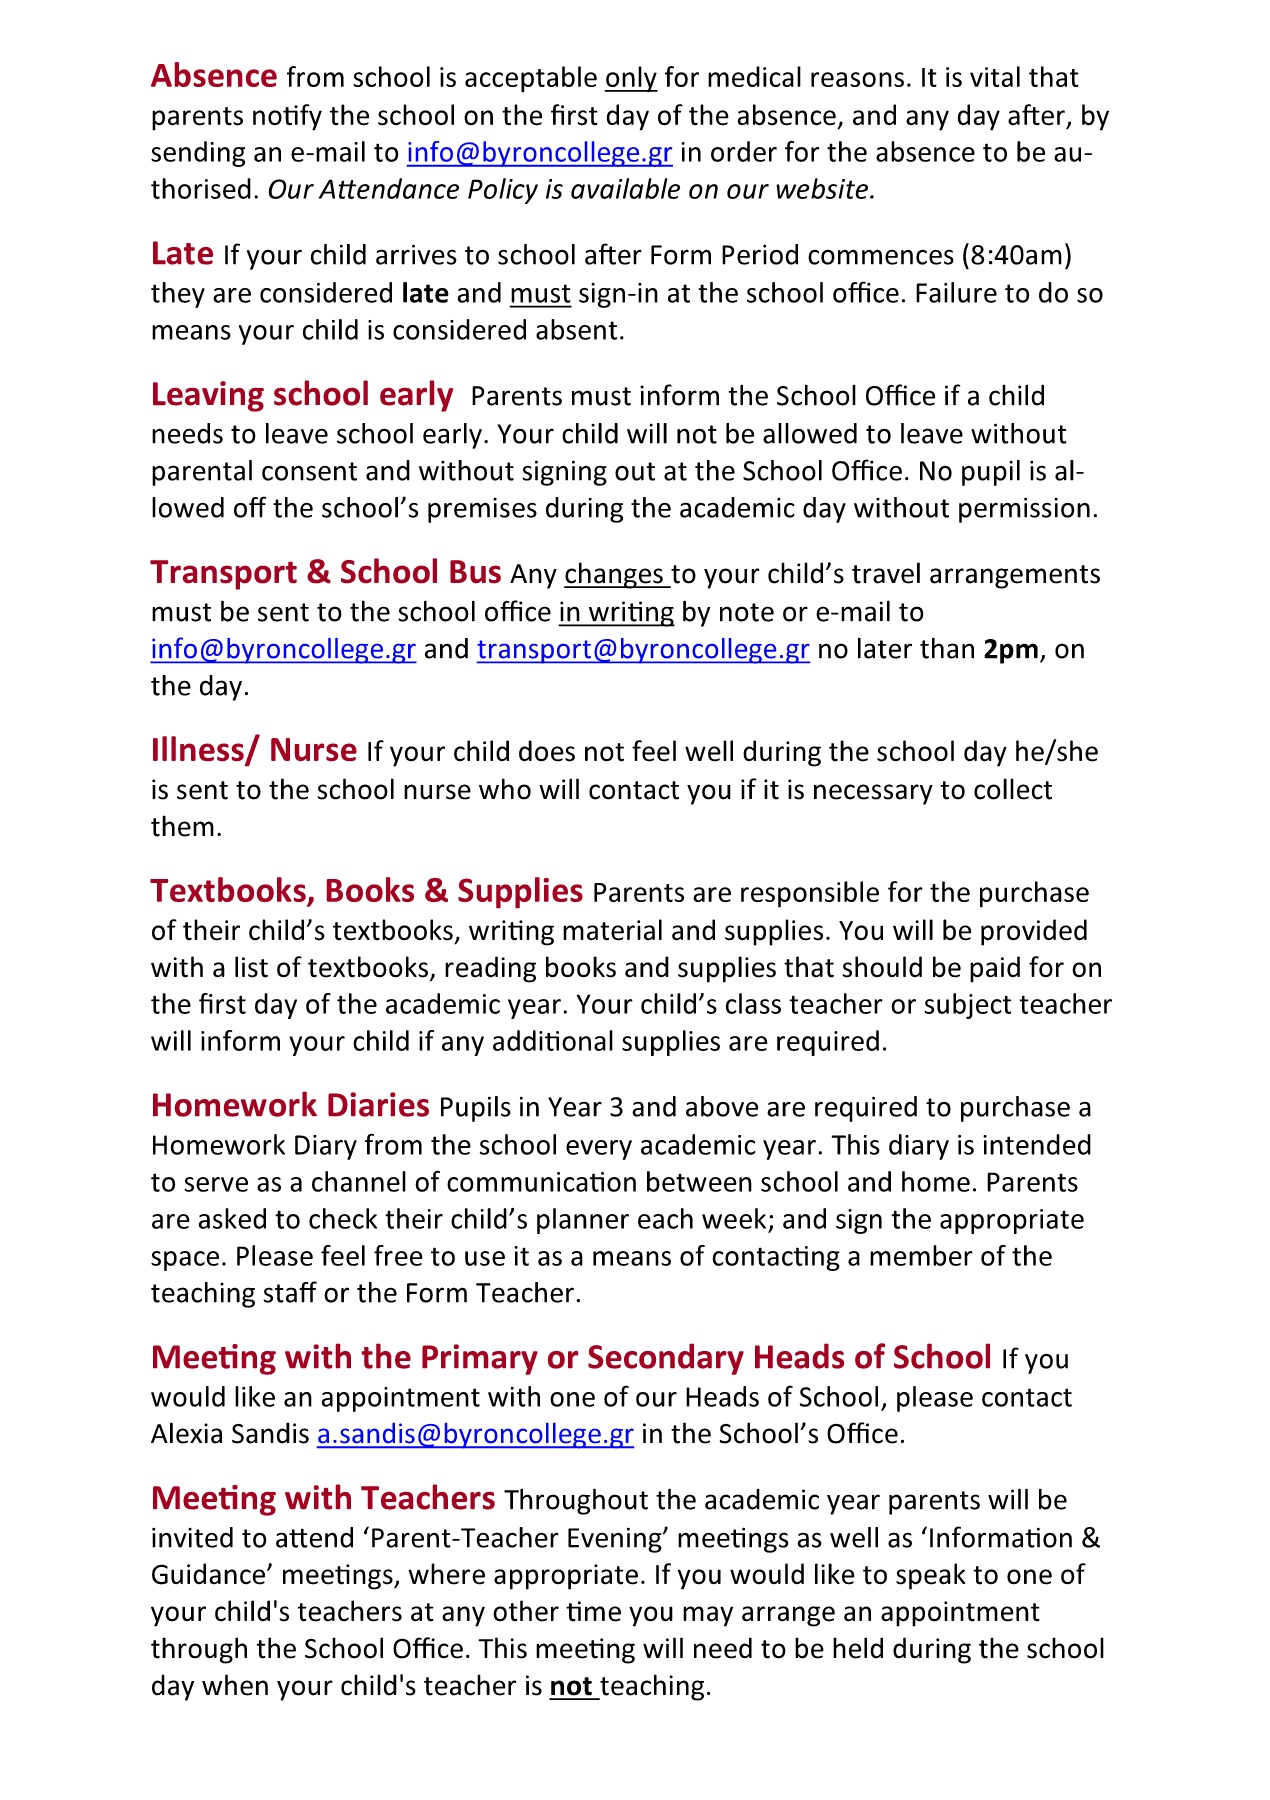 2017-2018 ESSENTIAL SCHOOL INFORMATION Pages 1 - 4 - Text